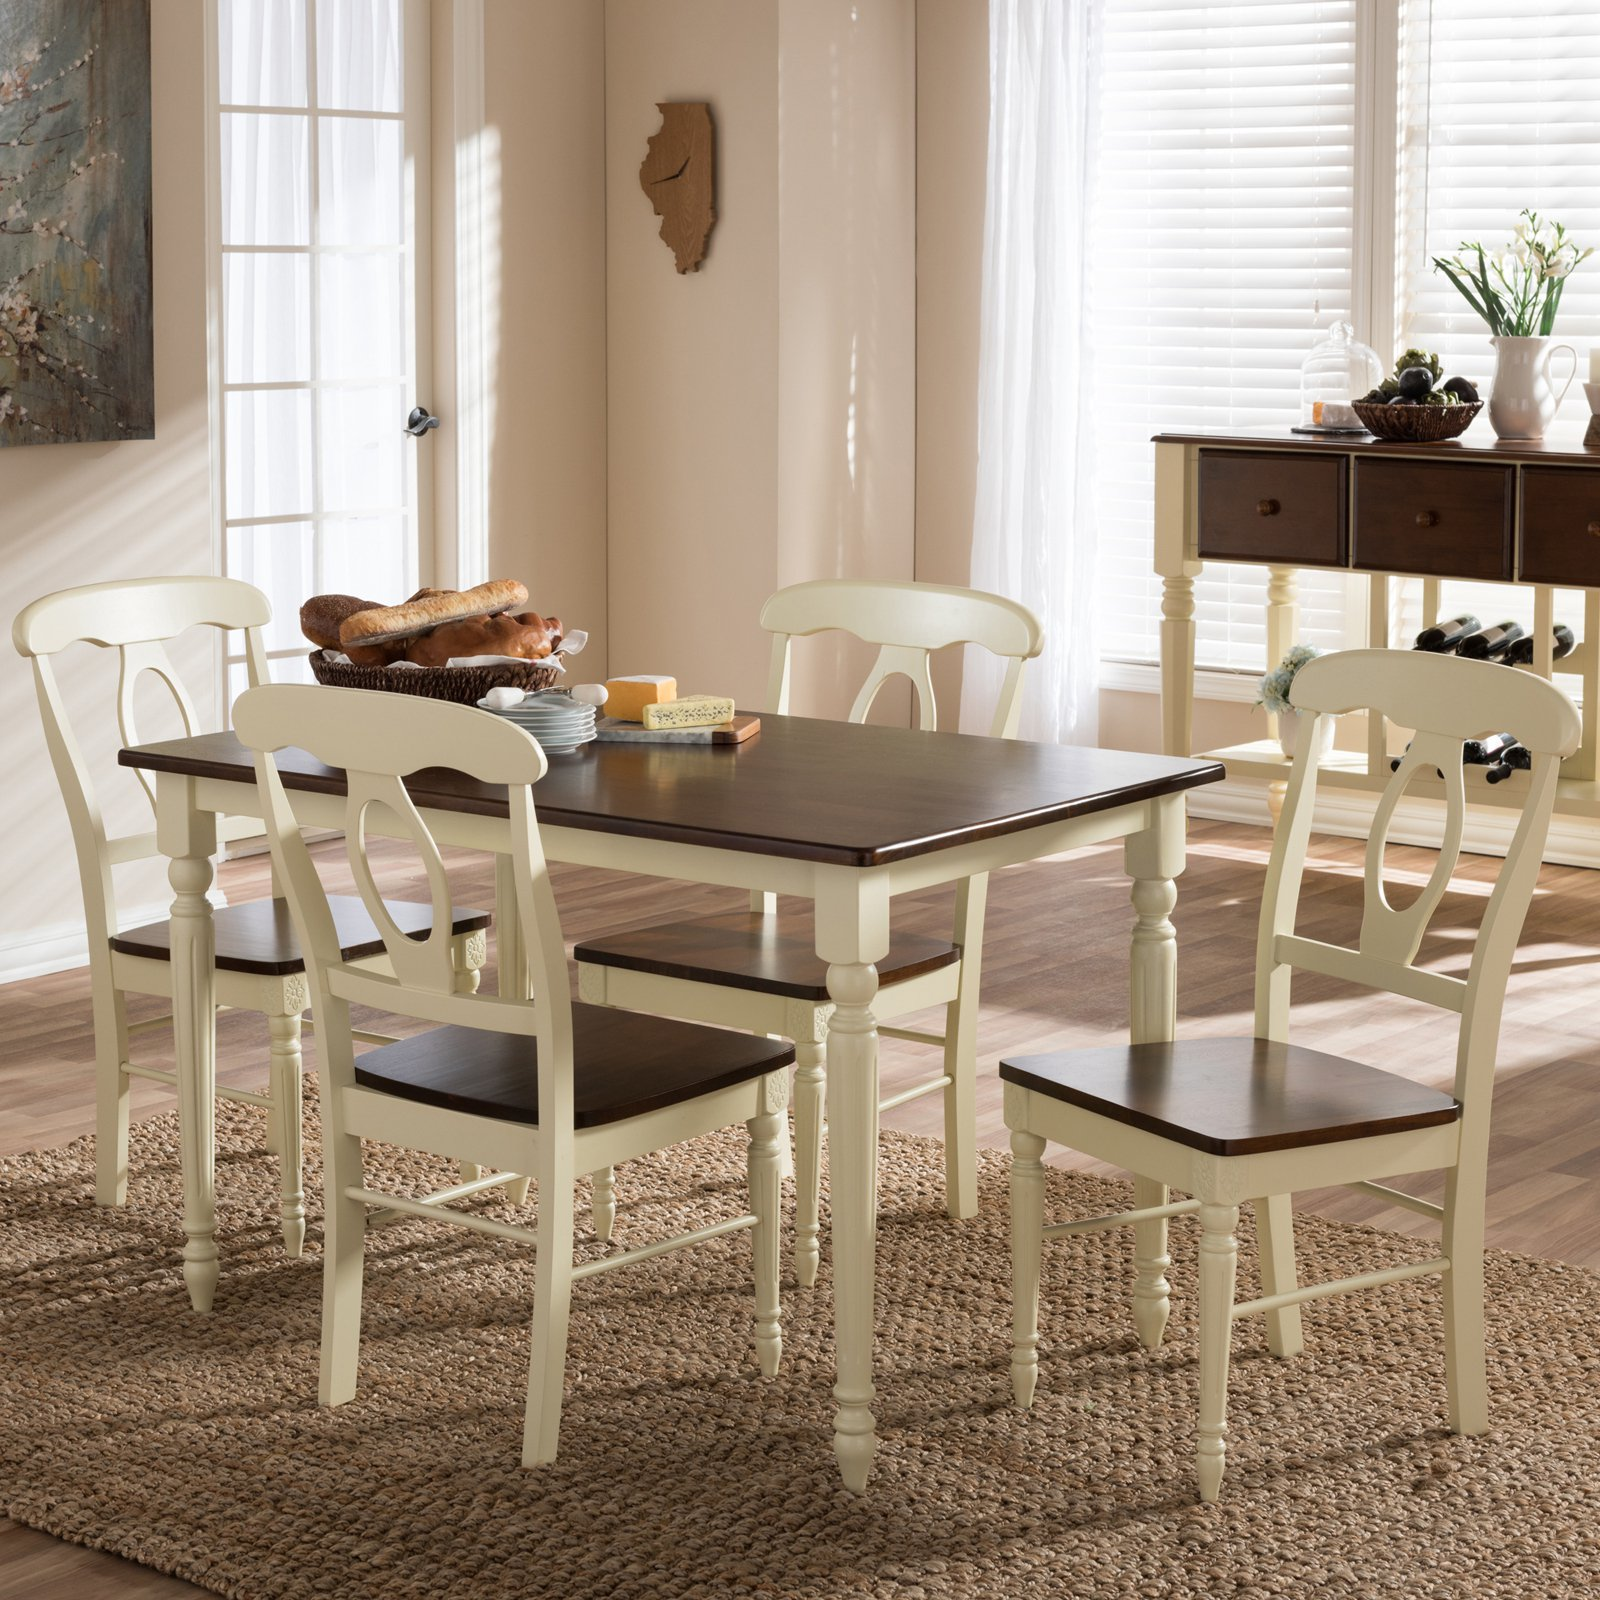 Baxton Studio Napoleon 5 Piece Dining Table Set